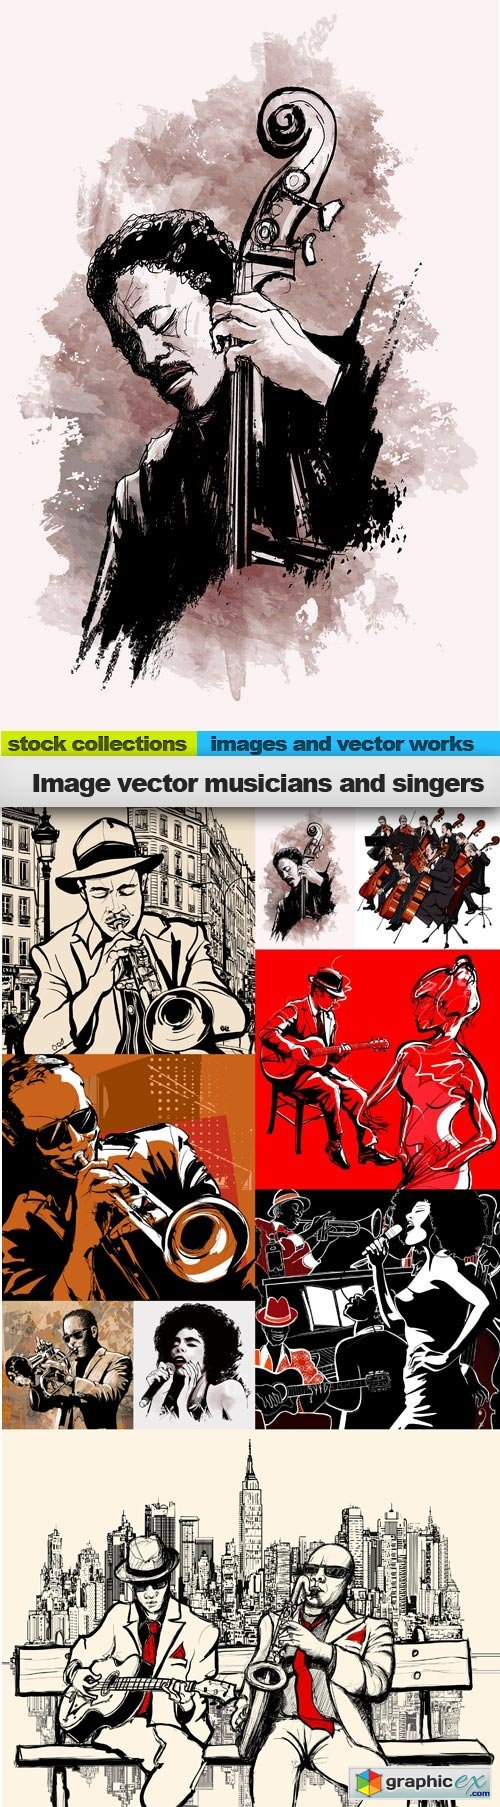 Image vector musicians and singers, 10 x EPS